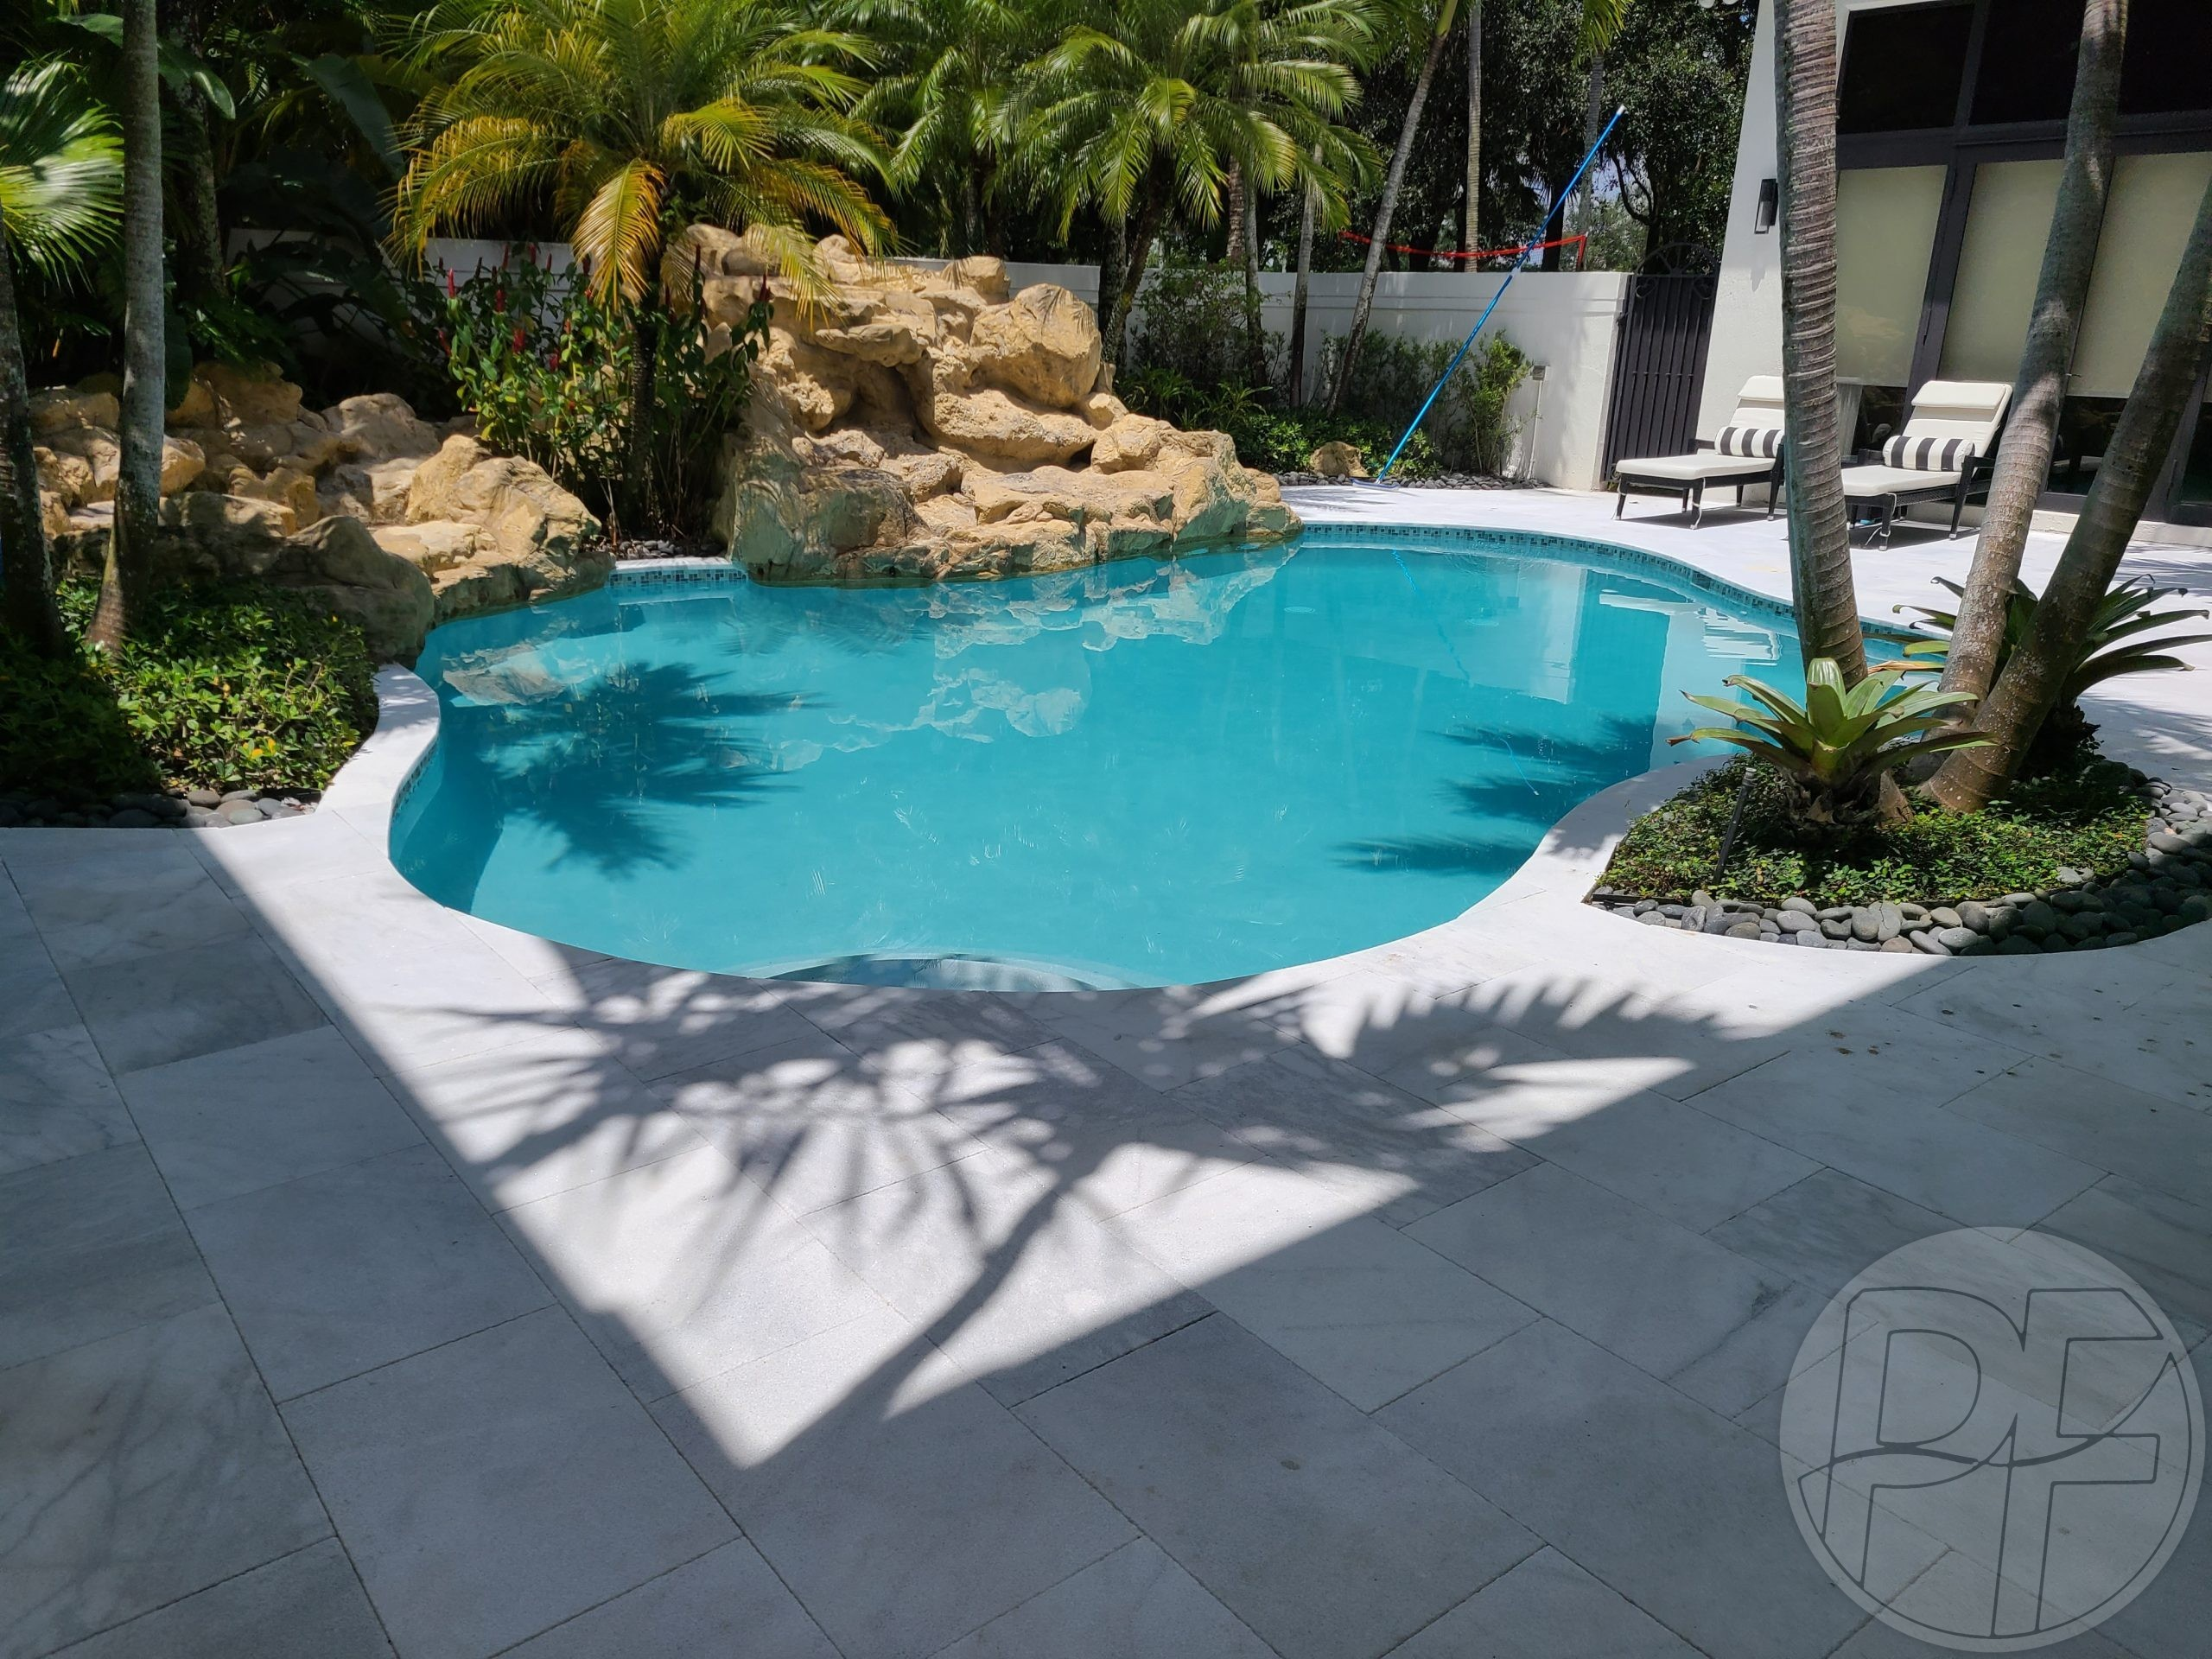 Pool & Deck Remodeling - Tropical Oasis - Pools Finishing Inc.